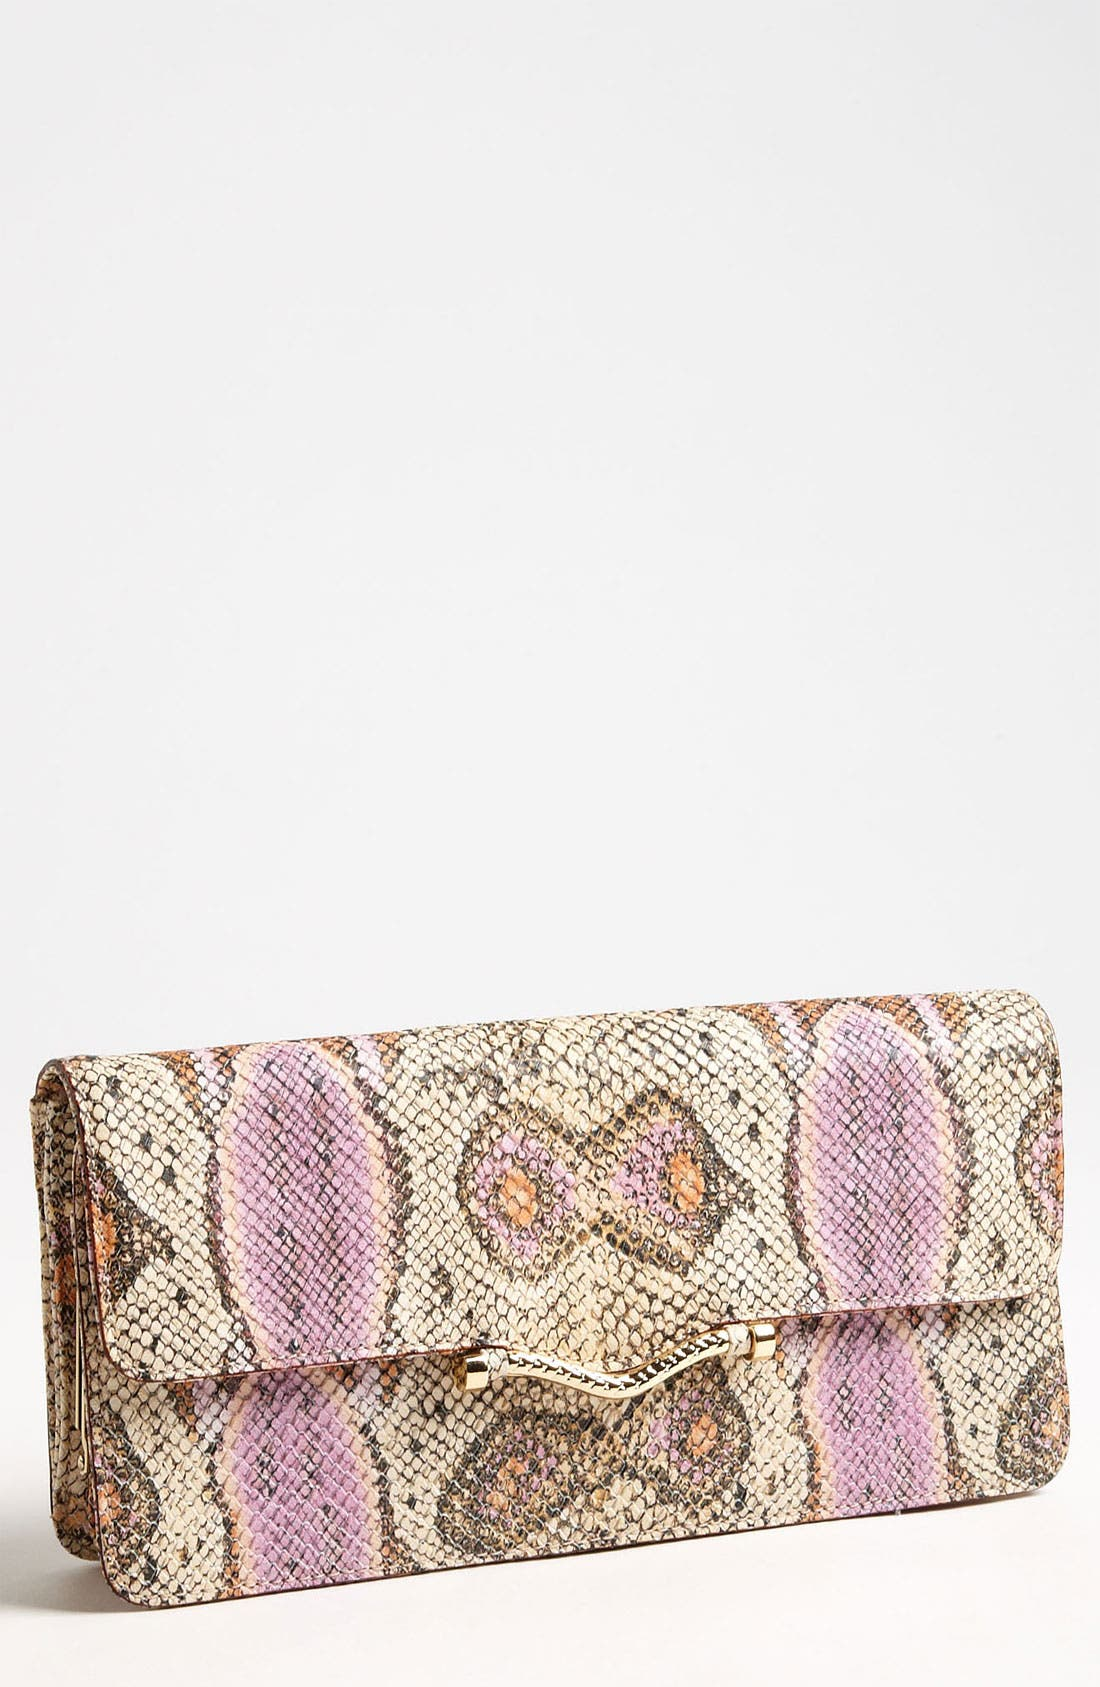 Main Image - Rebecca Minkoff 'Honey' Clutch